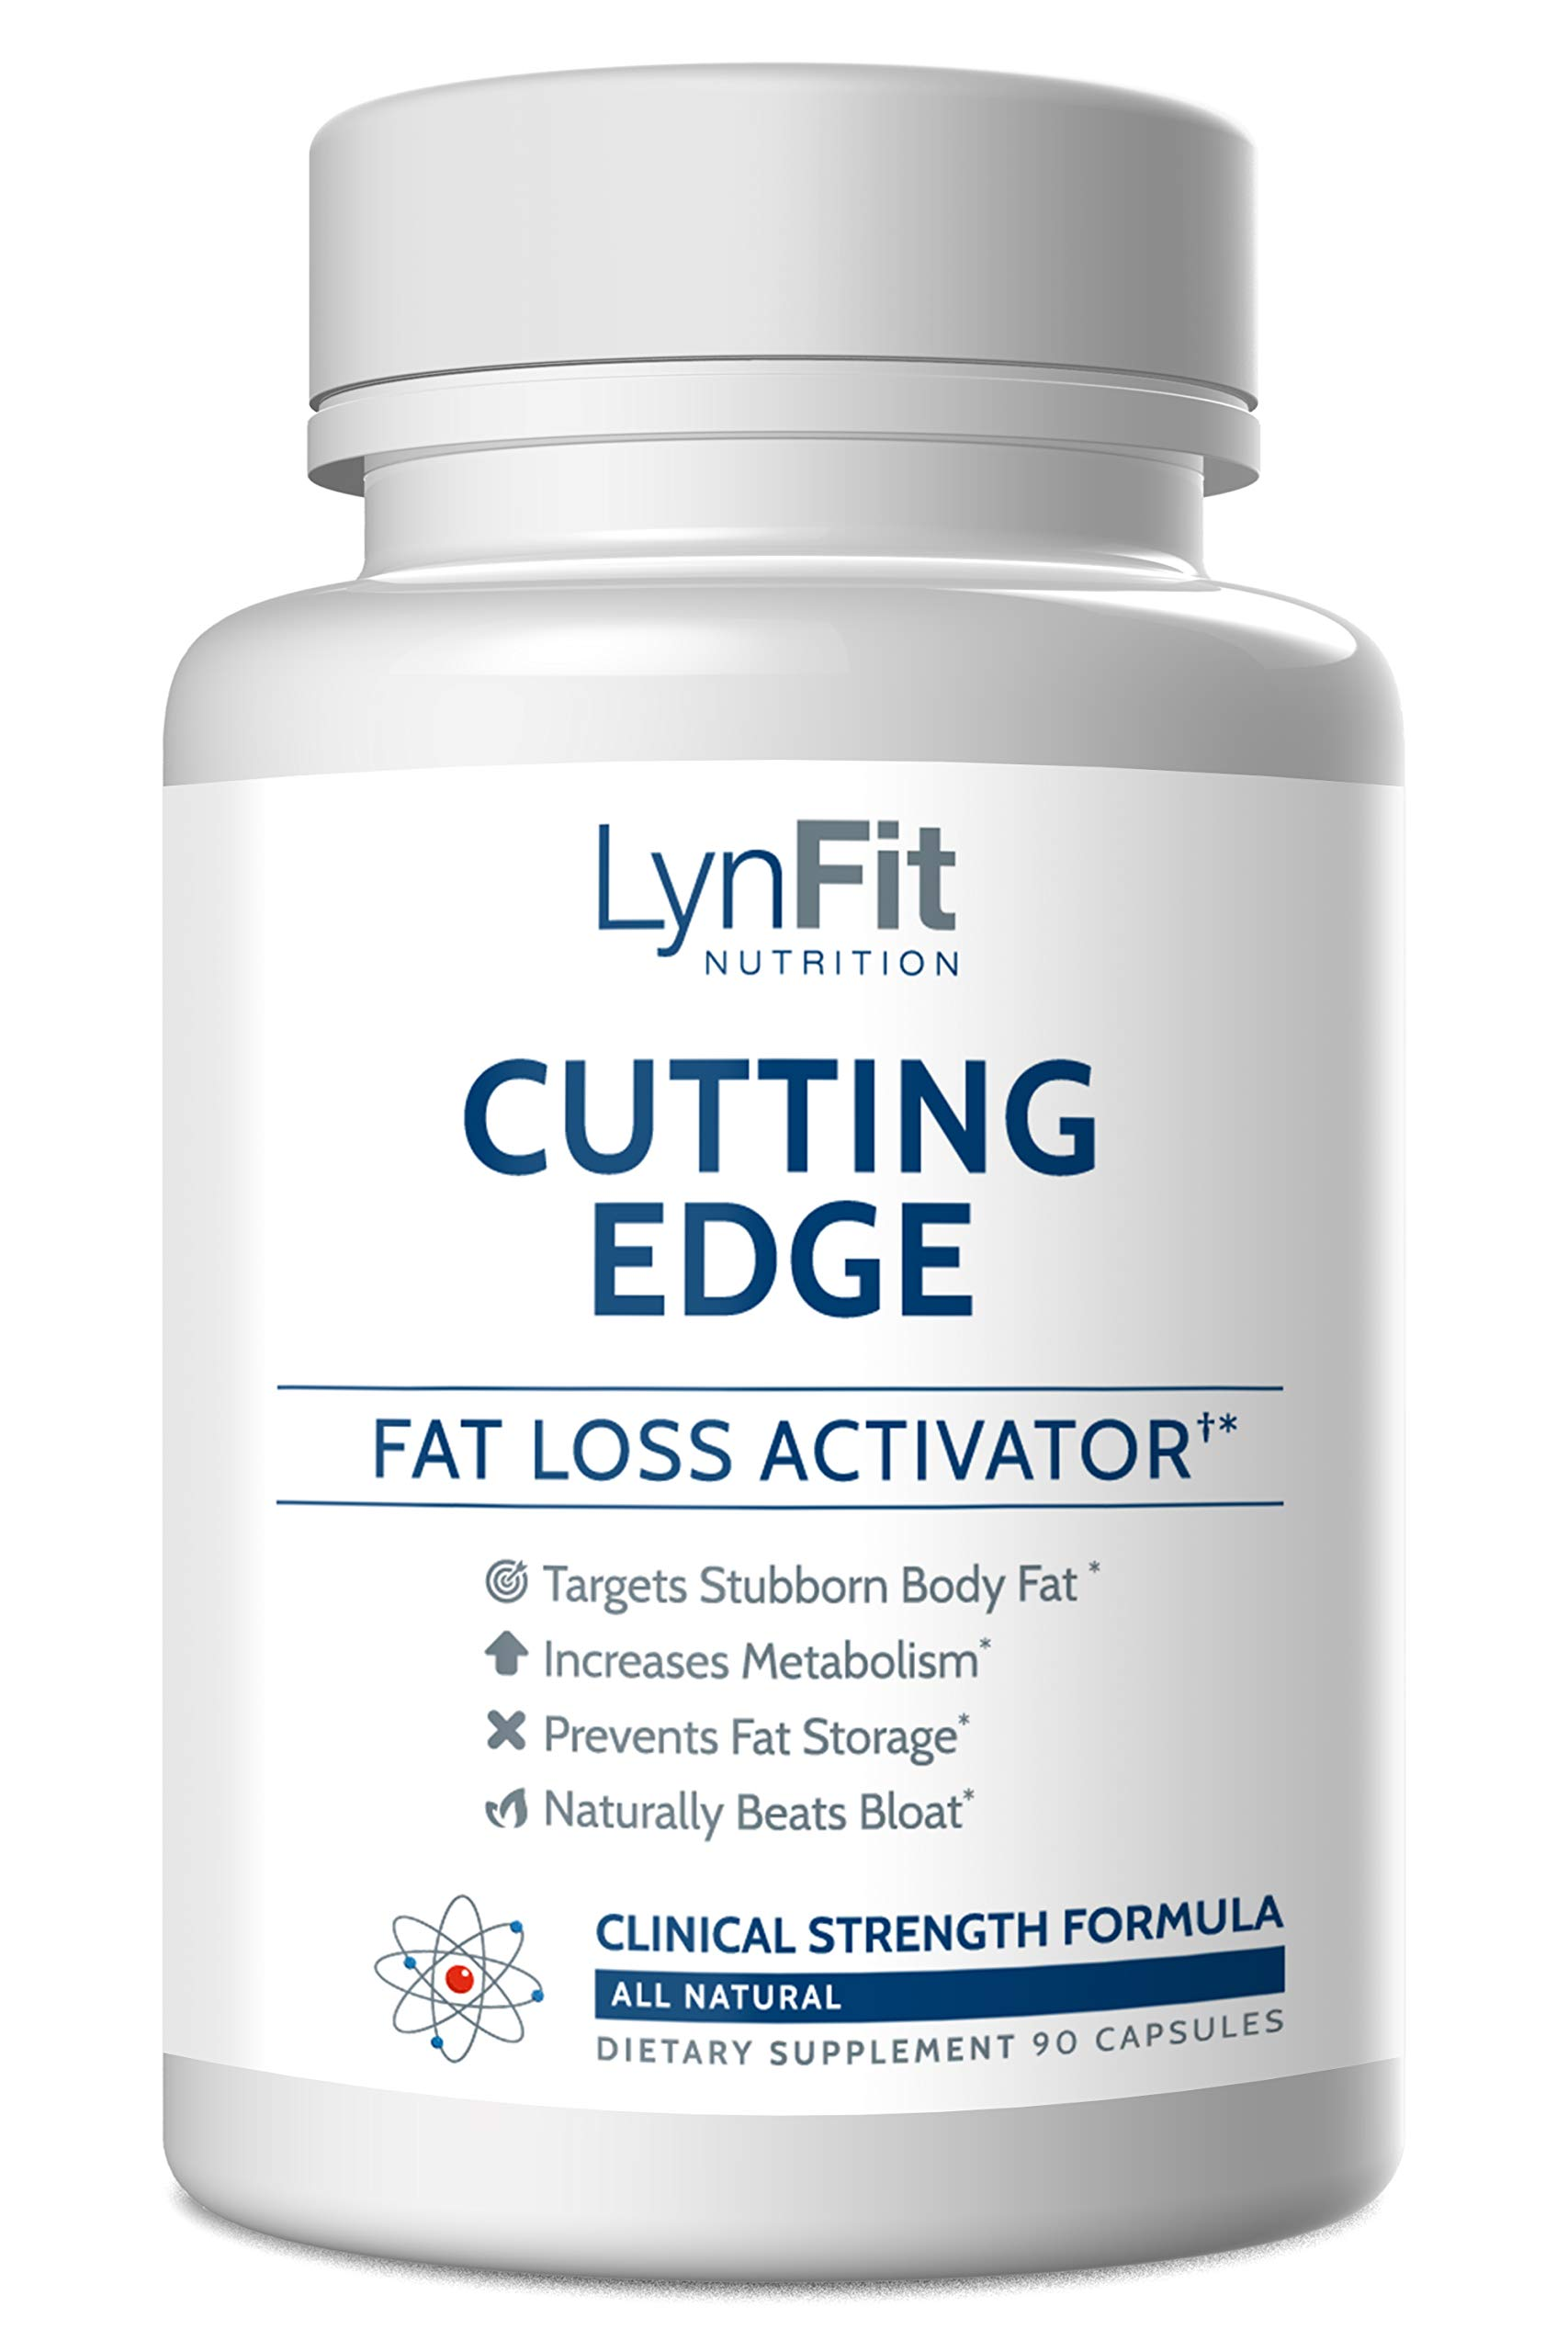 Cutting Edge with L-Carnitine for Faster Fat Burning - 90 Capsules by LynFit Nutrition